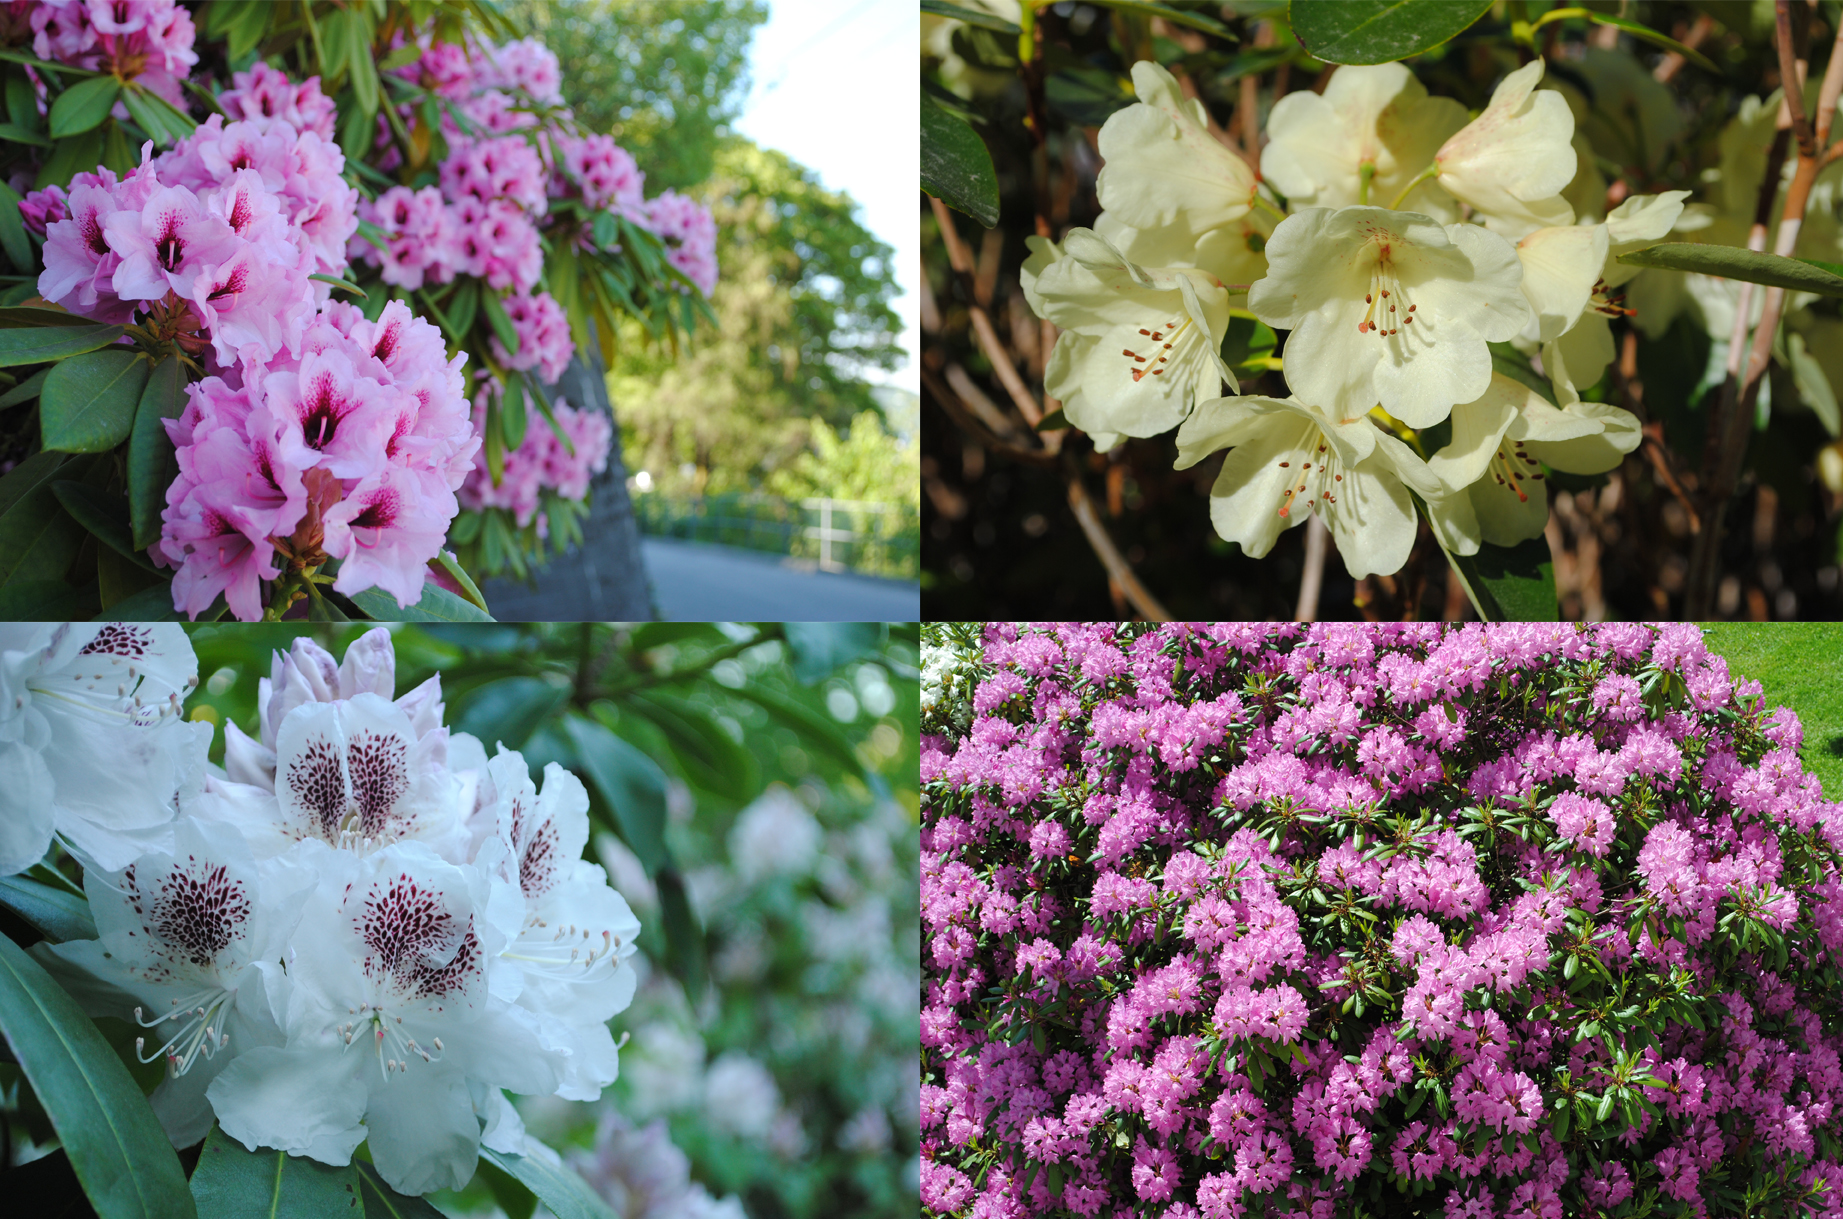 Even more Rhododendrons in Bergen 2013 (photo: Mathew Reeve)